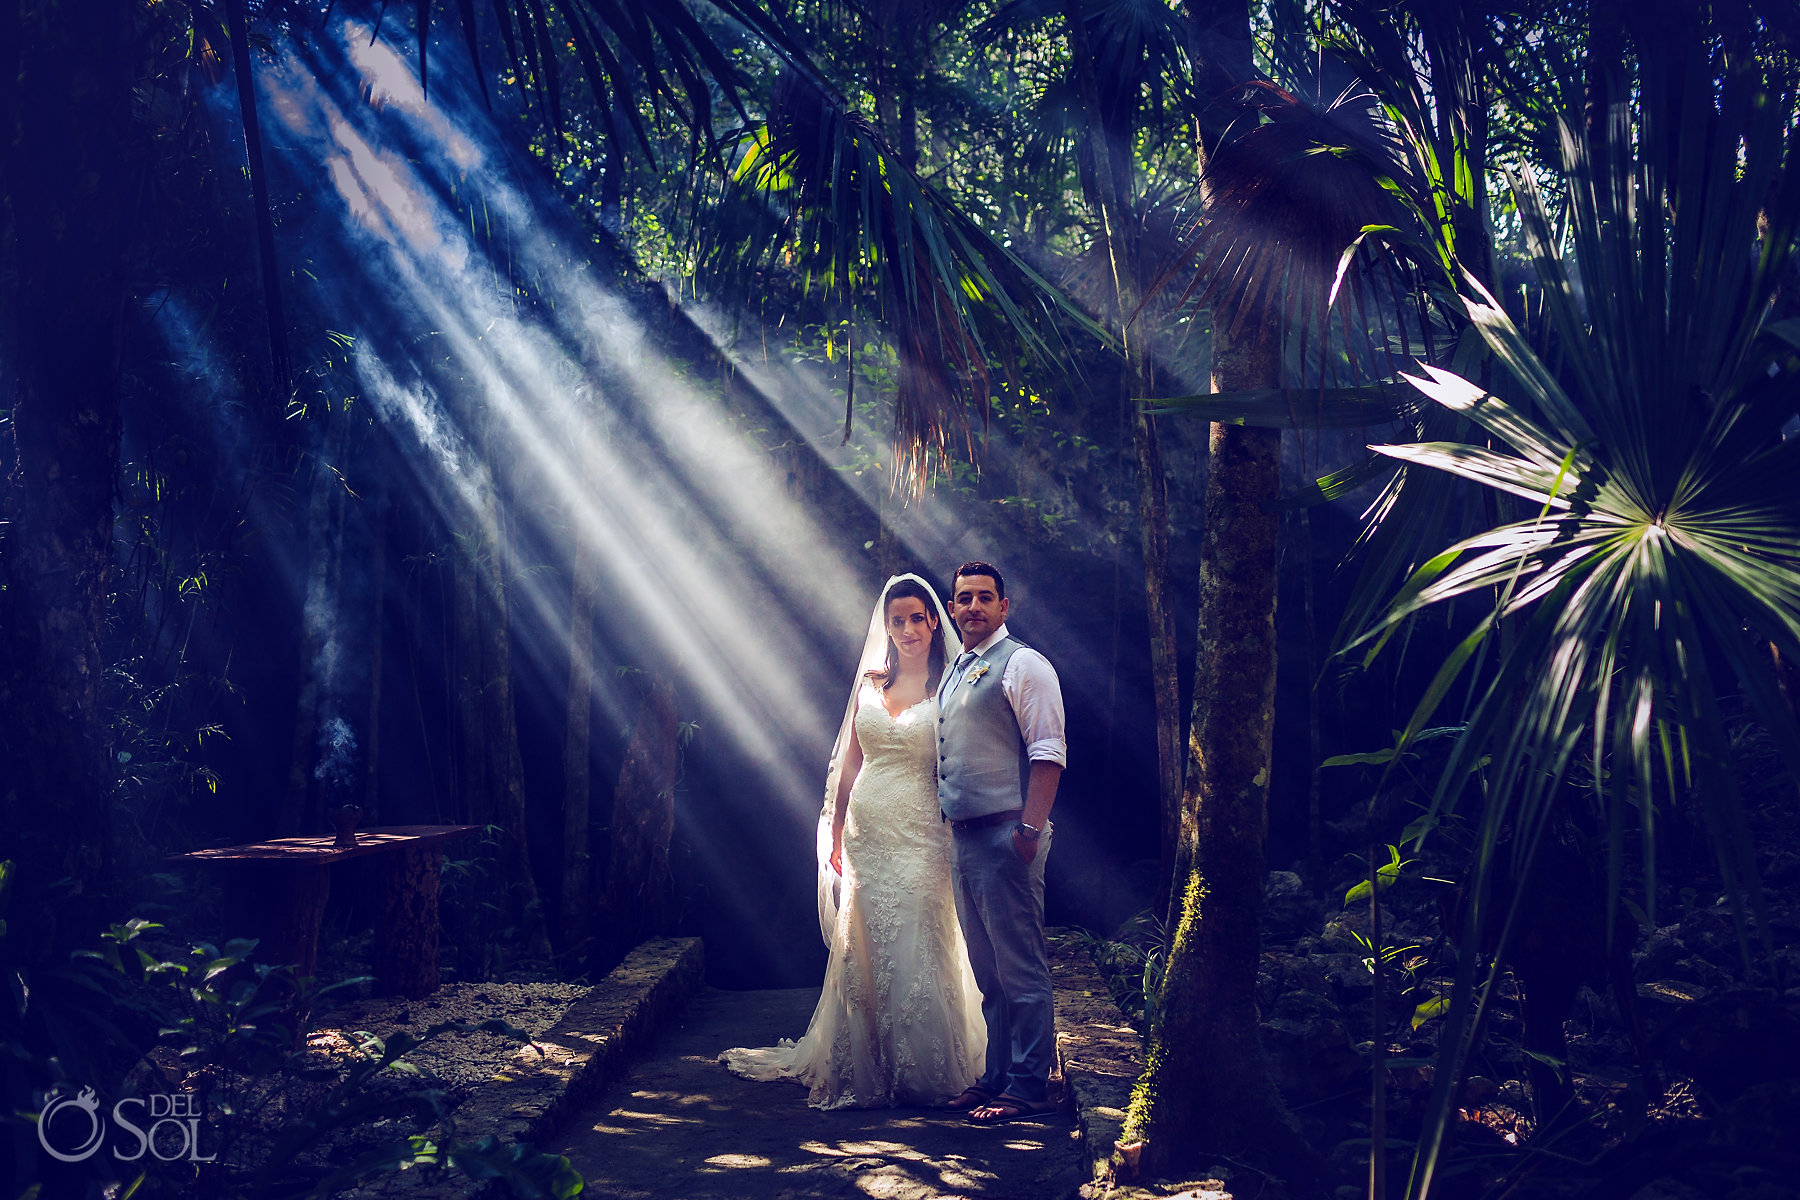 mayan jungle Tulum Cenote Experience bride and groom photoshoot